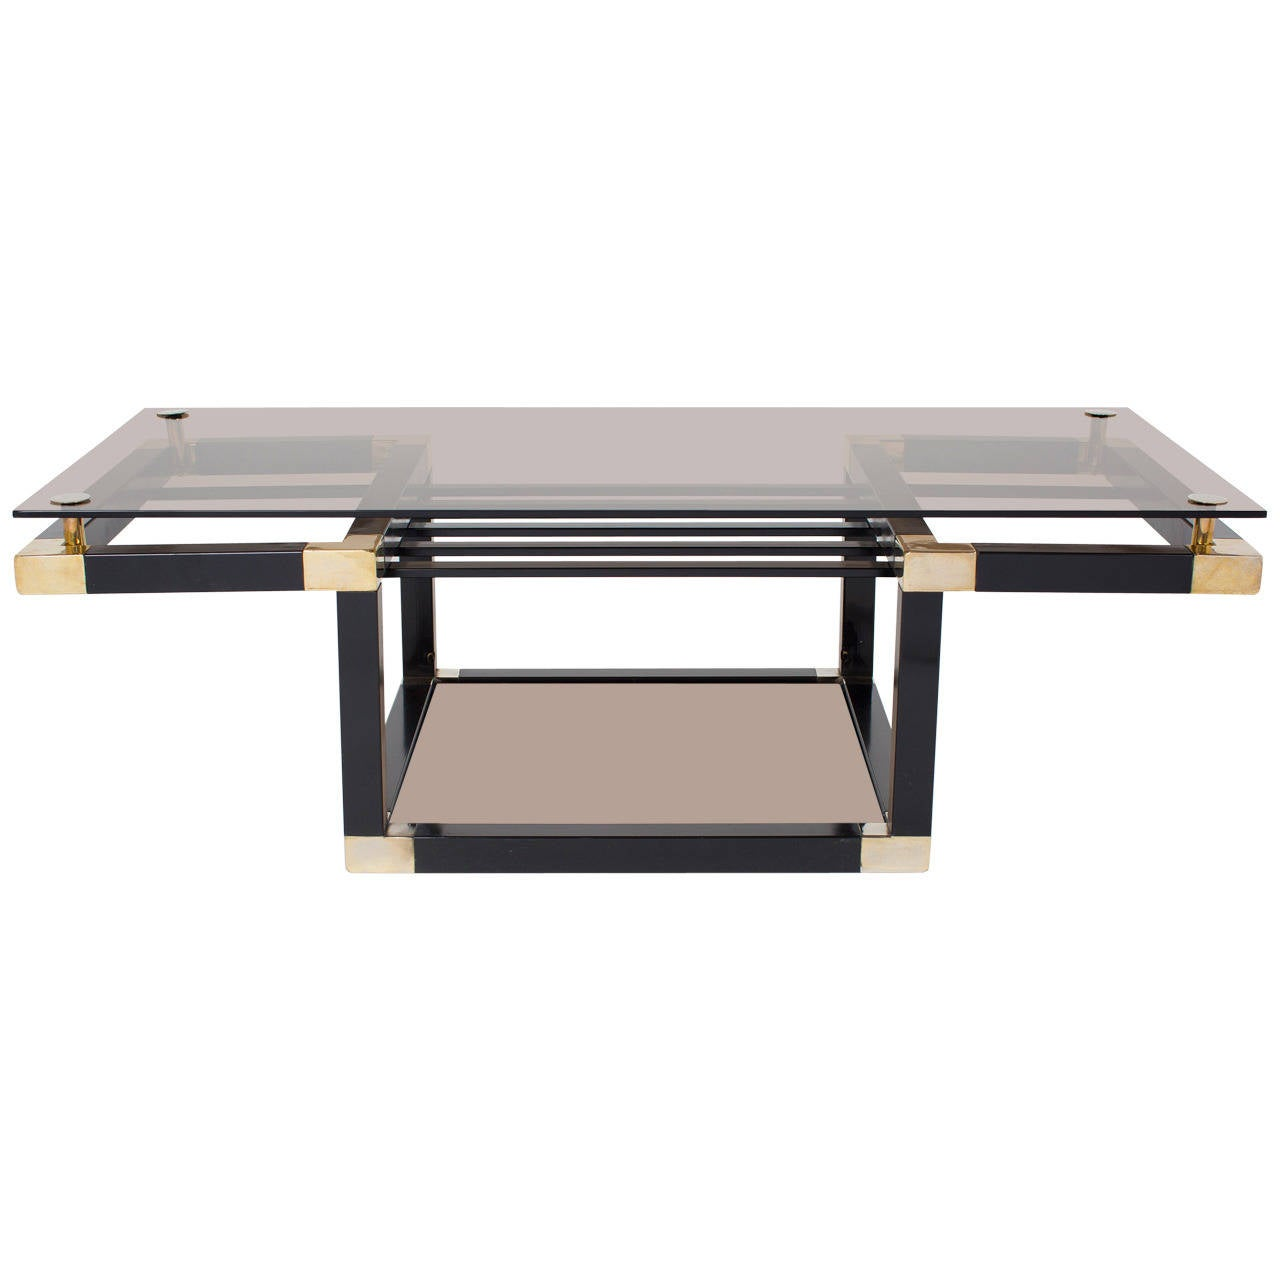 French Vintage Brass And Lacquered Steel Coffee Table At 1stdibs